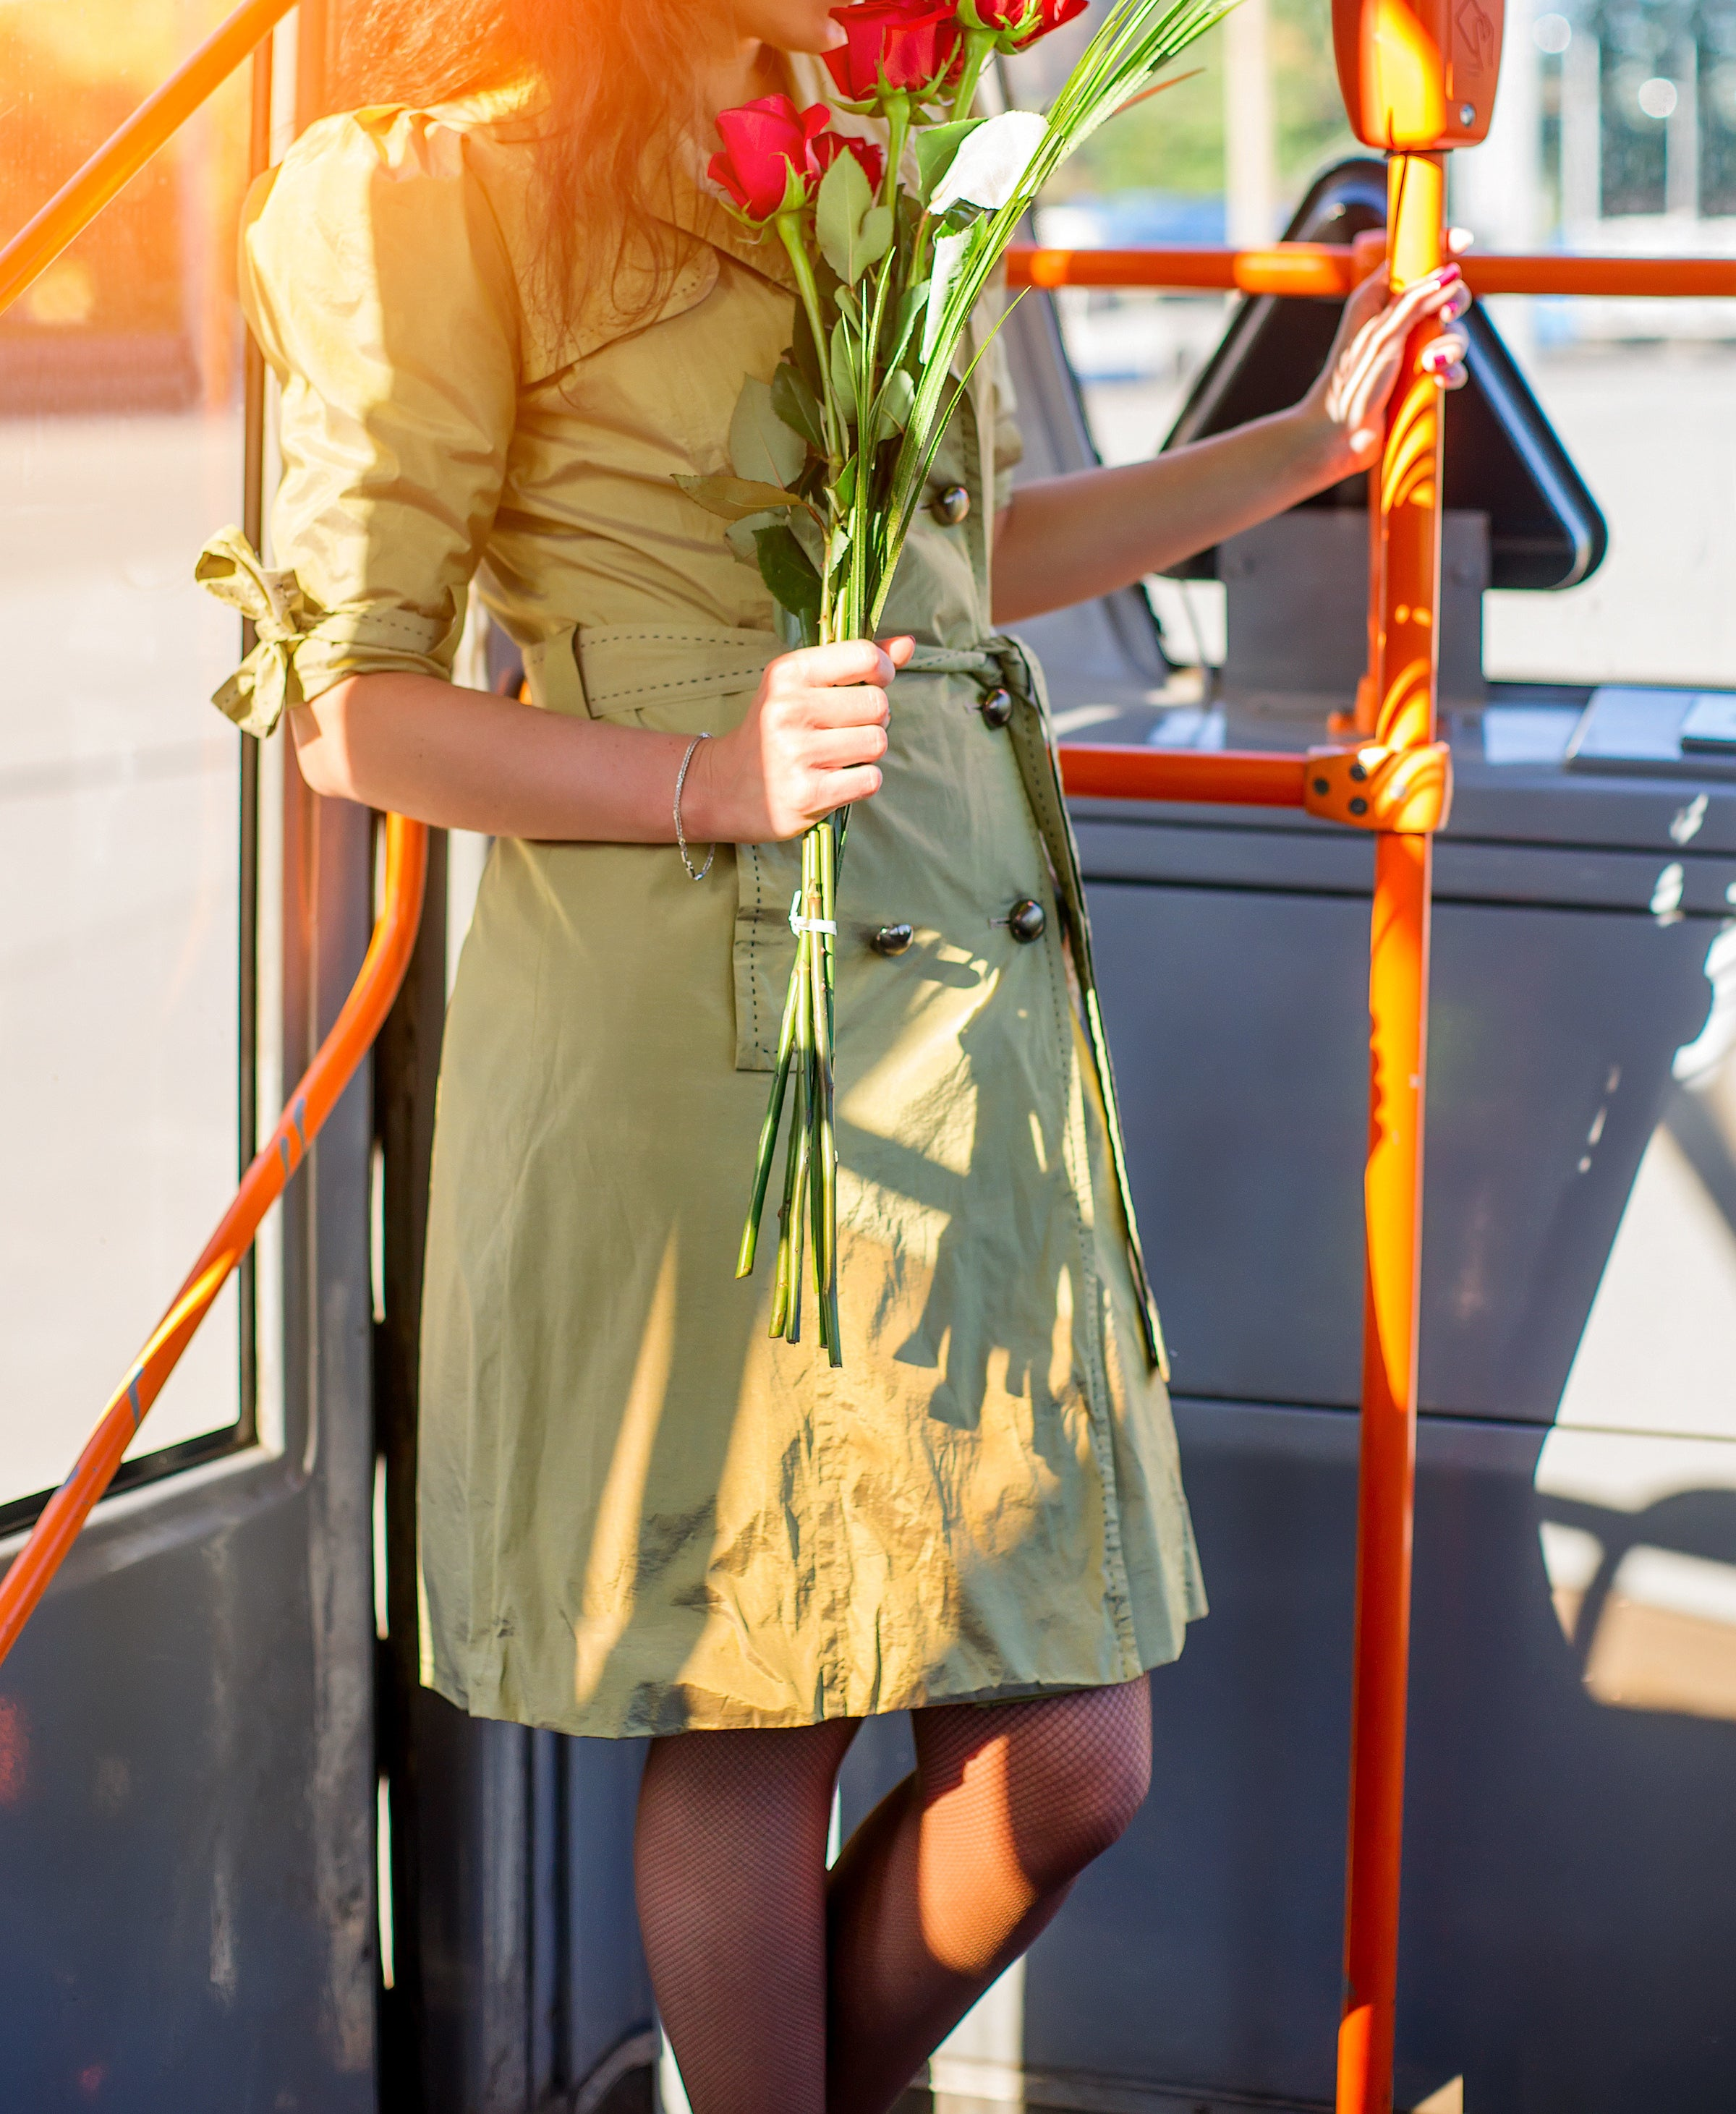 A woman on a bus holds a bunch of roses